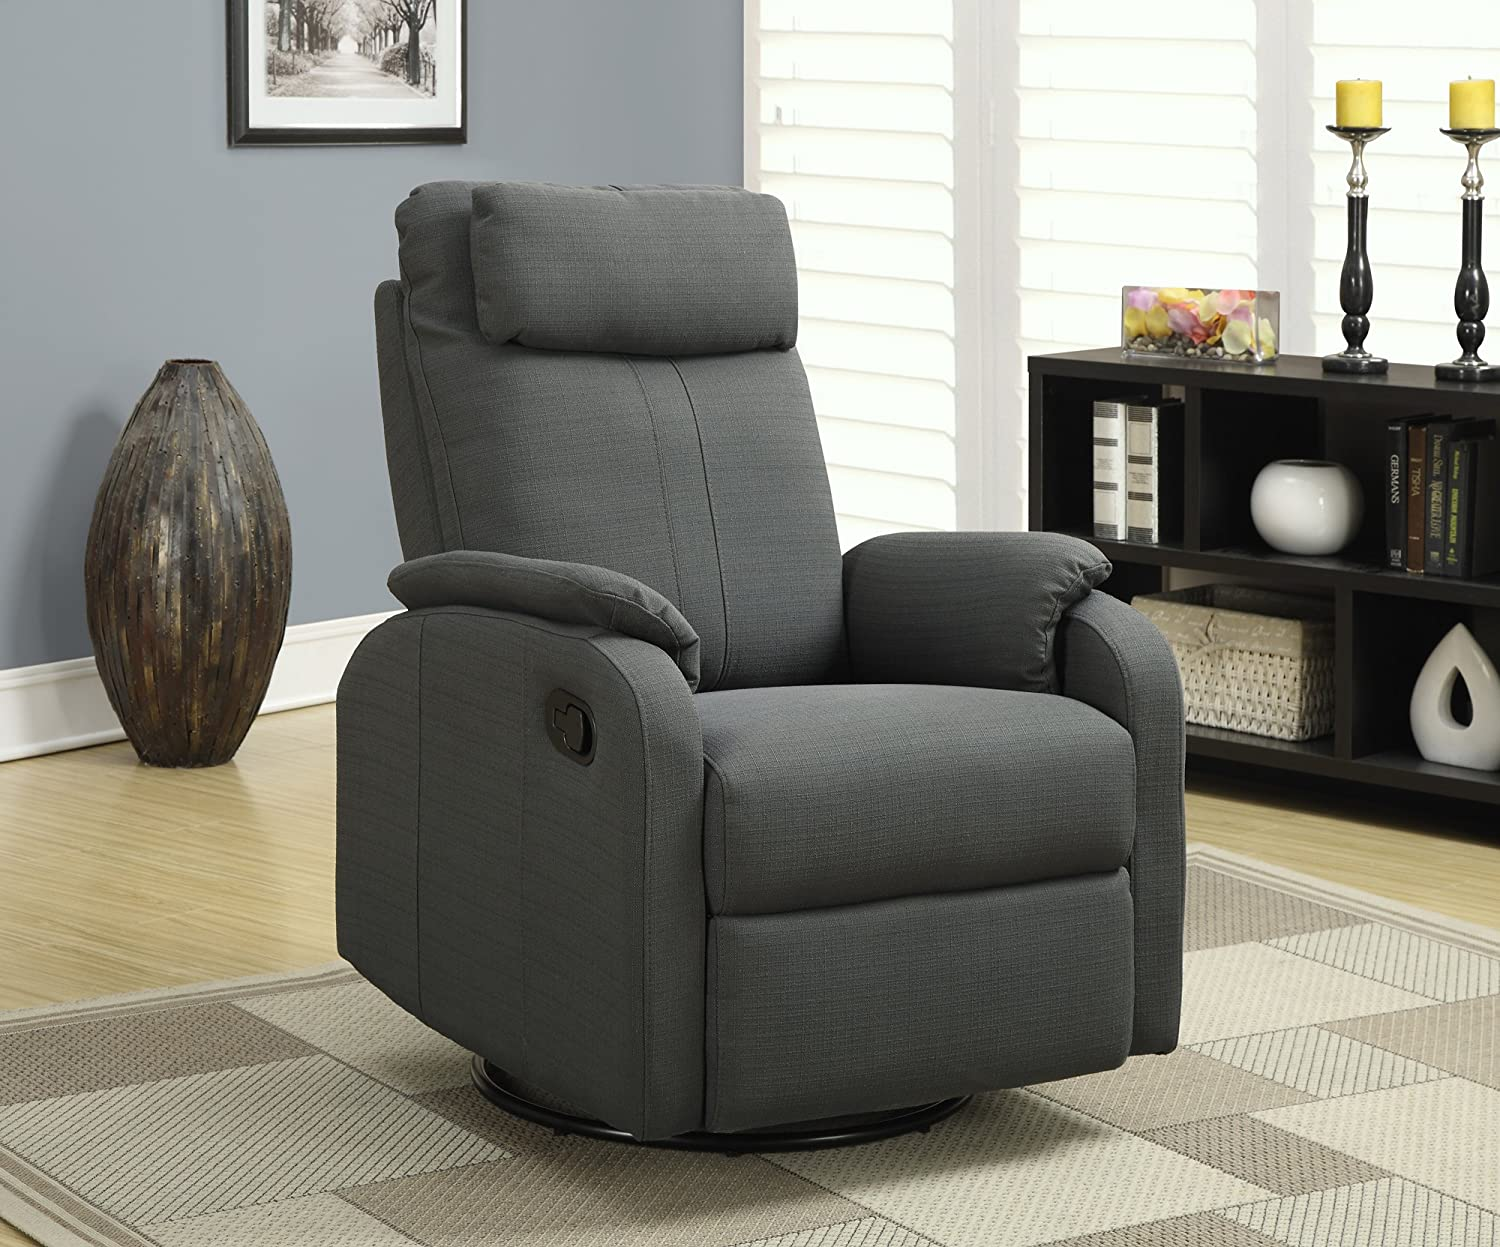 Amazoncom Monarch Specialties Charcoal Grey Linen Fabric Swivel - Reclining swivel chair